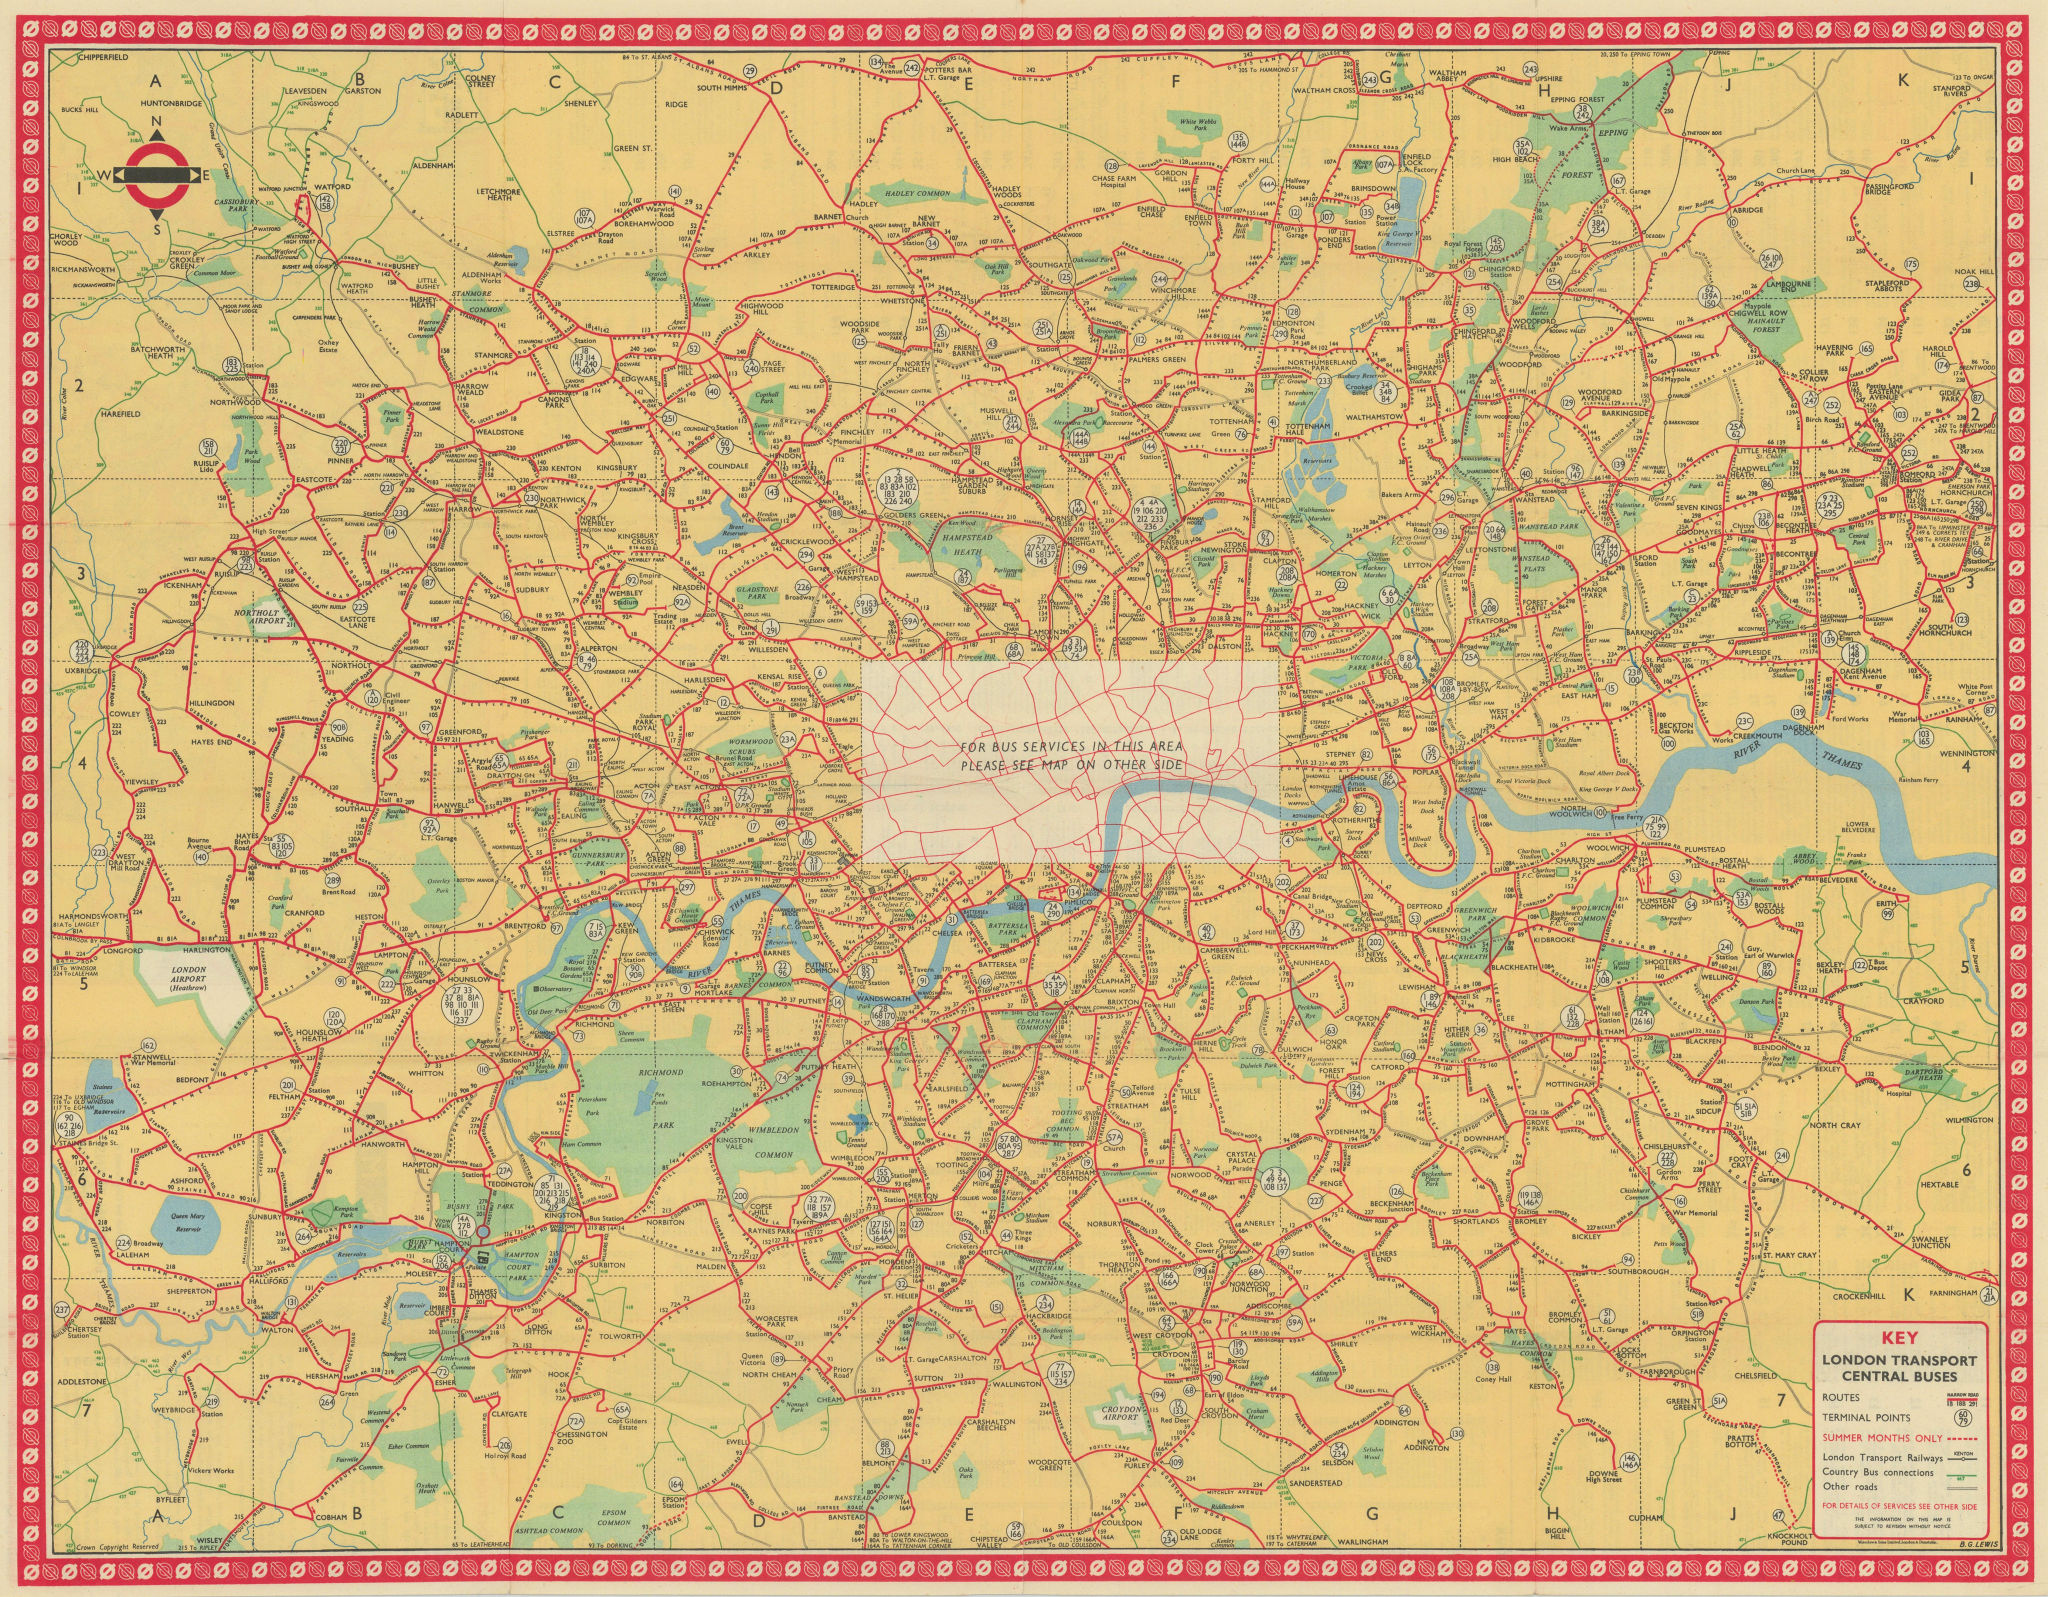 London Transport Bus map Central Area. LEWIS January 1951 old vintage